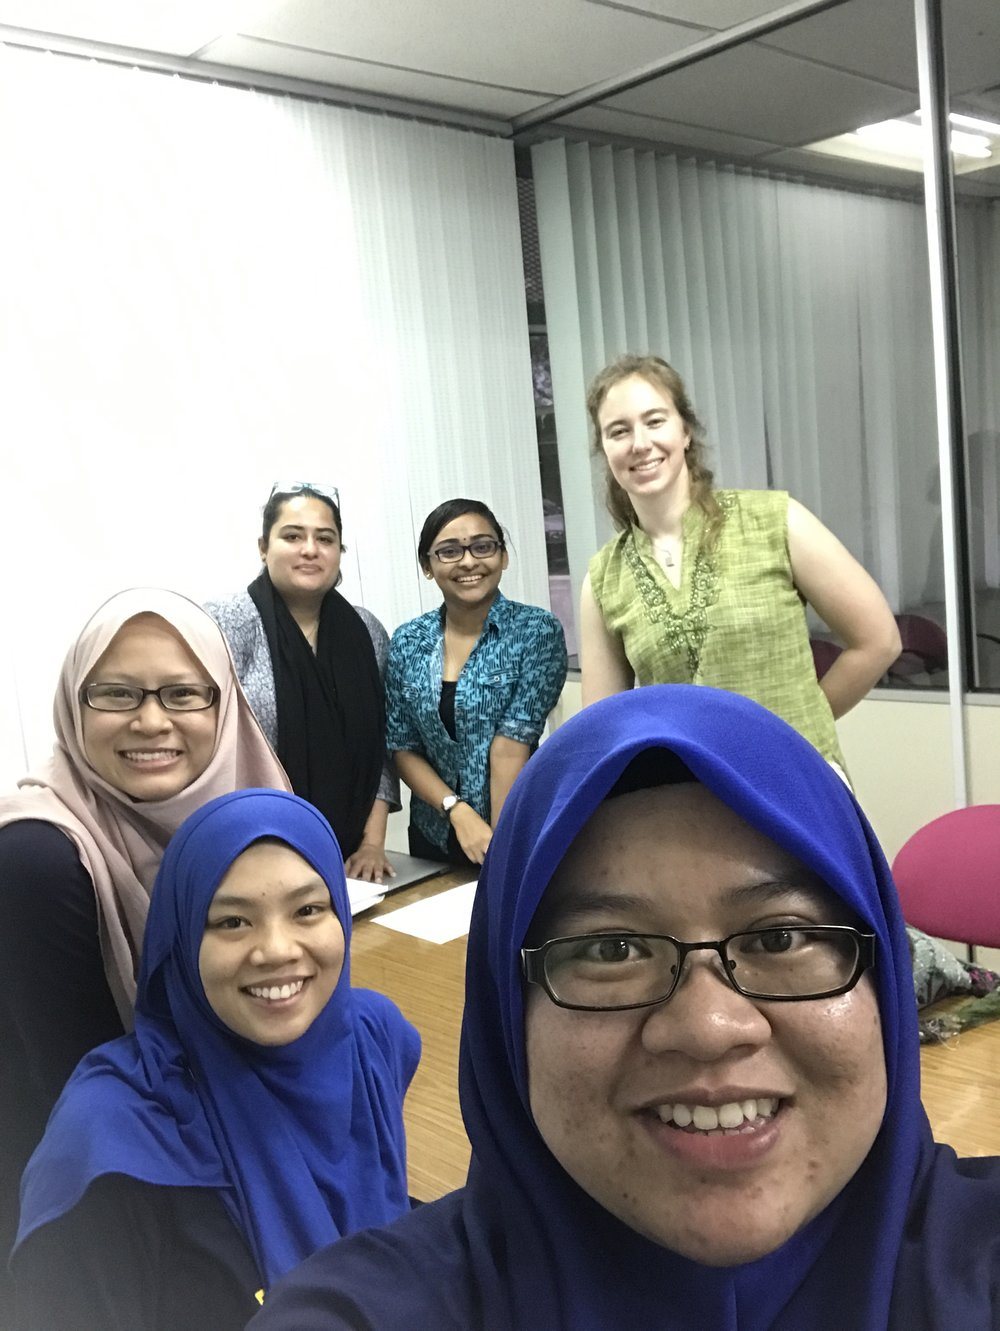 Posing for a casual selfie with Zulaikha, the local PHD student student working with us on this project.